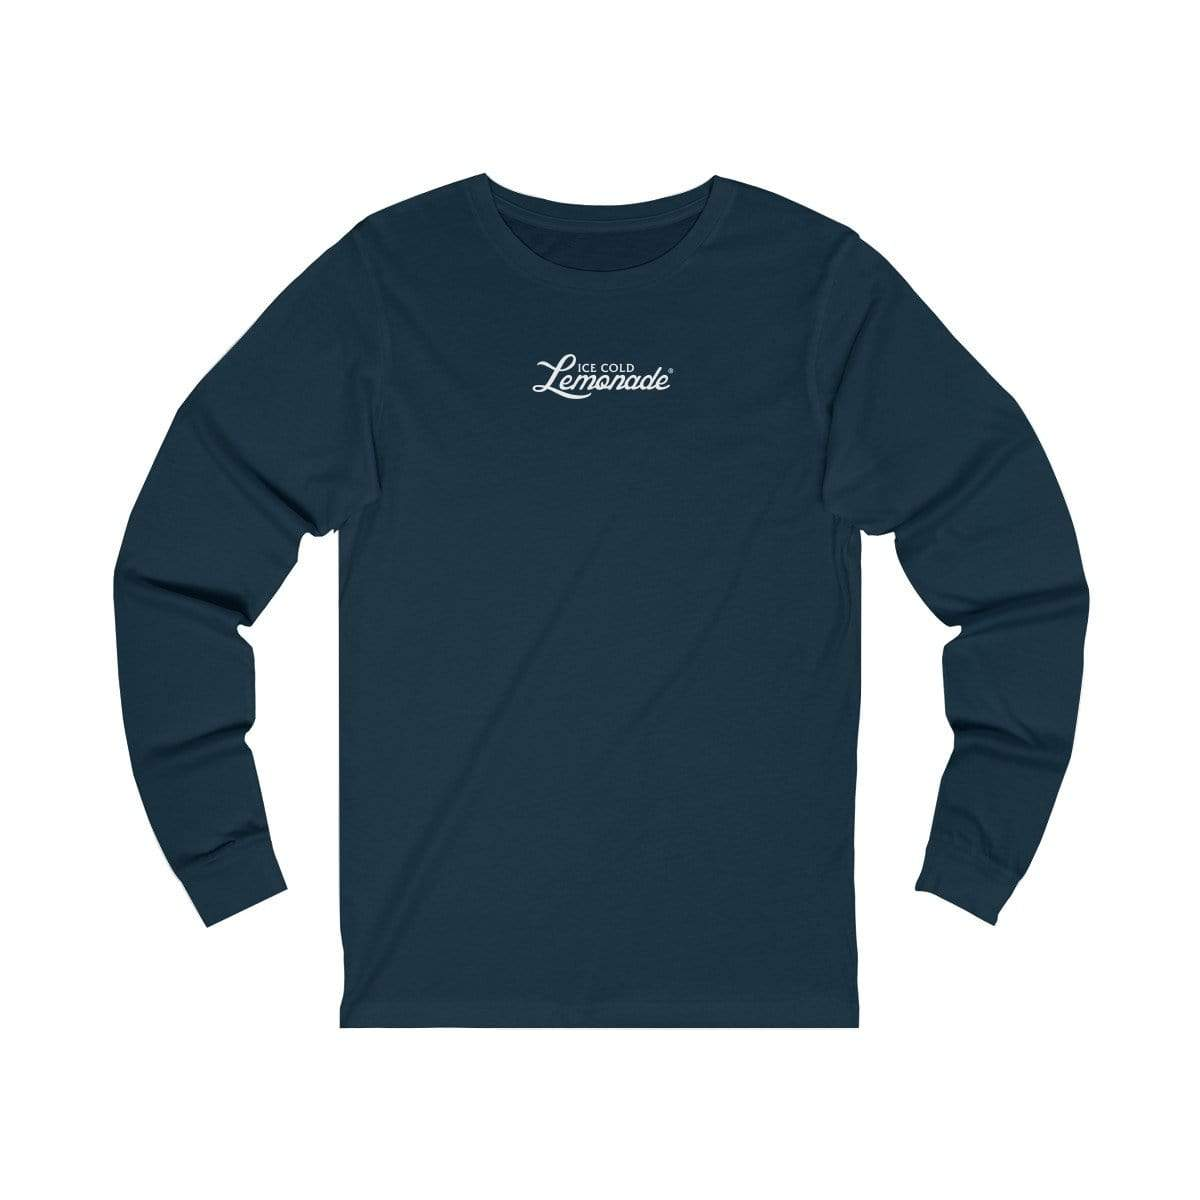 Lemonade Spine Long Sleeve - Ice Cold Lmnd Lemonade Spine Long Sleeve